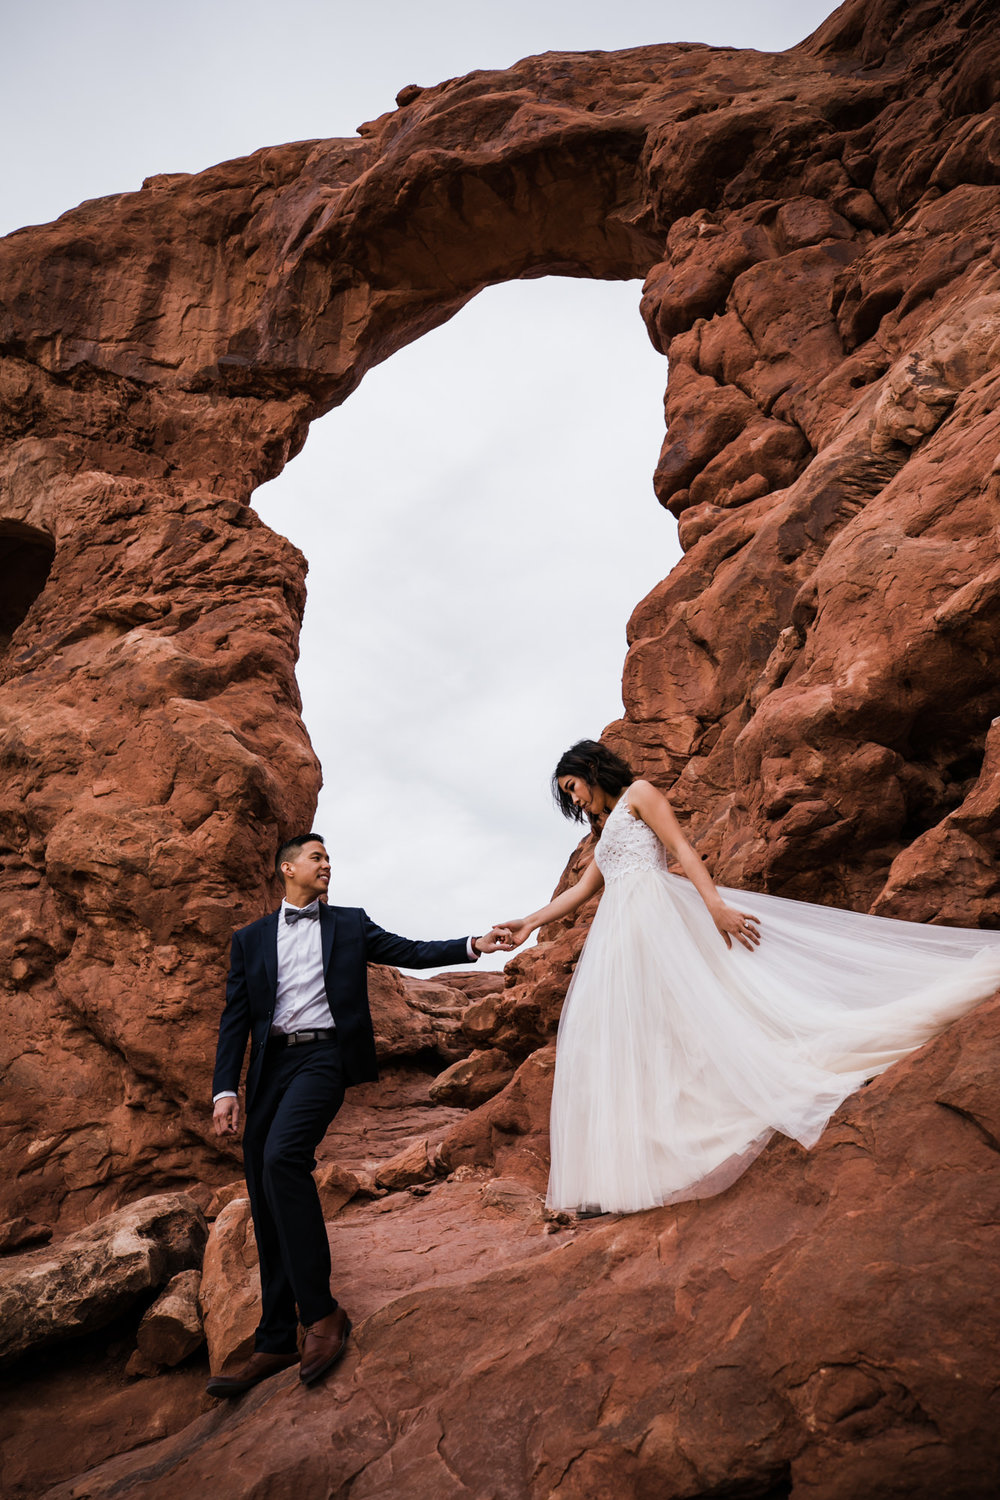 elopement first look in arches national park | desert elopement | moab wedding photographer | the hearnes adventure photography | www.thehearnes.com